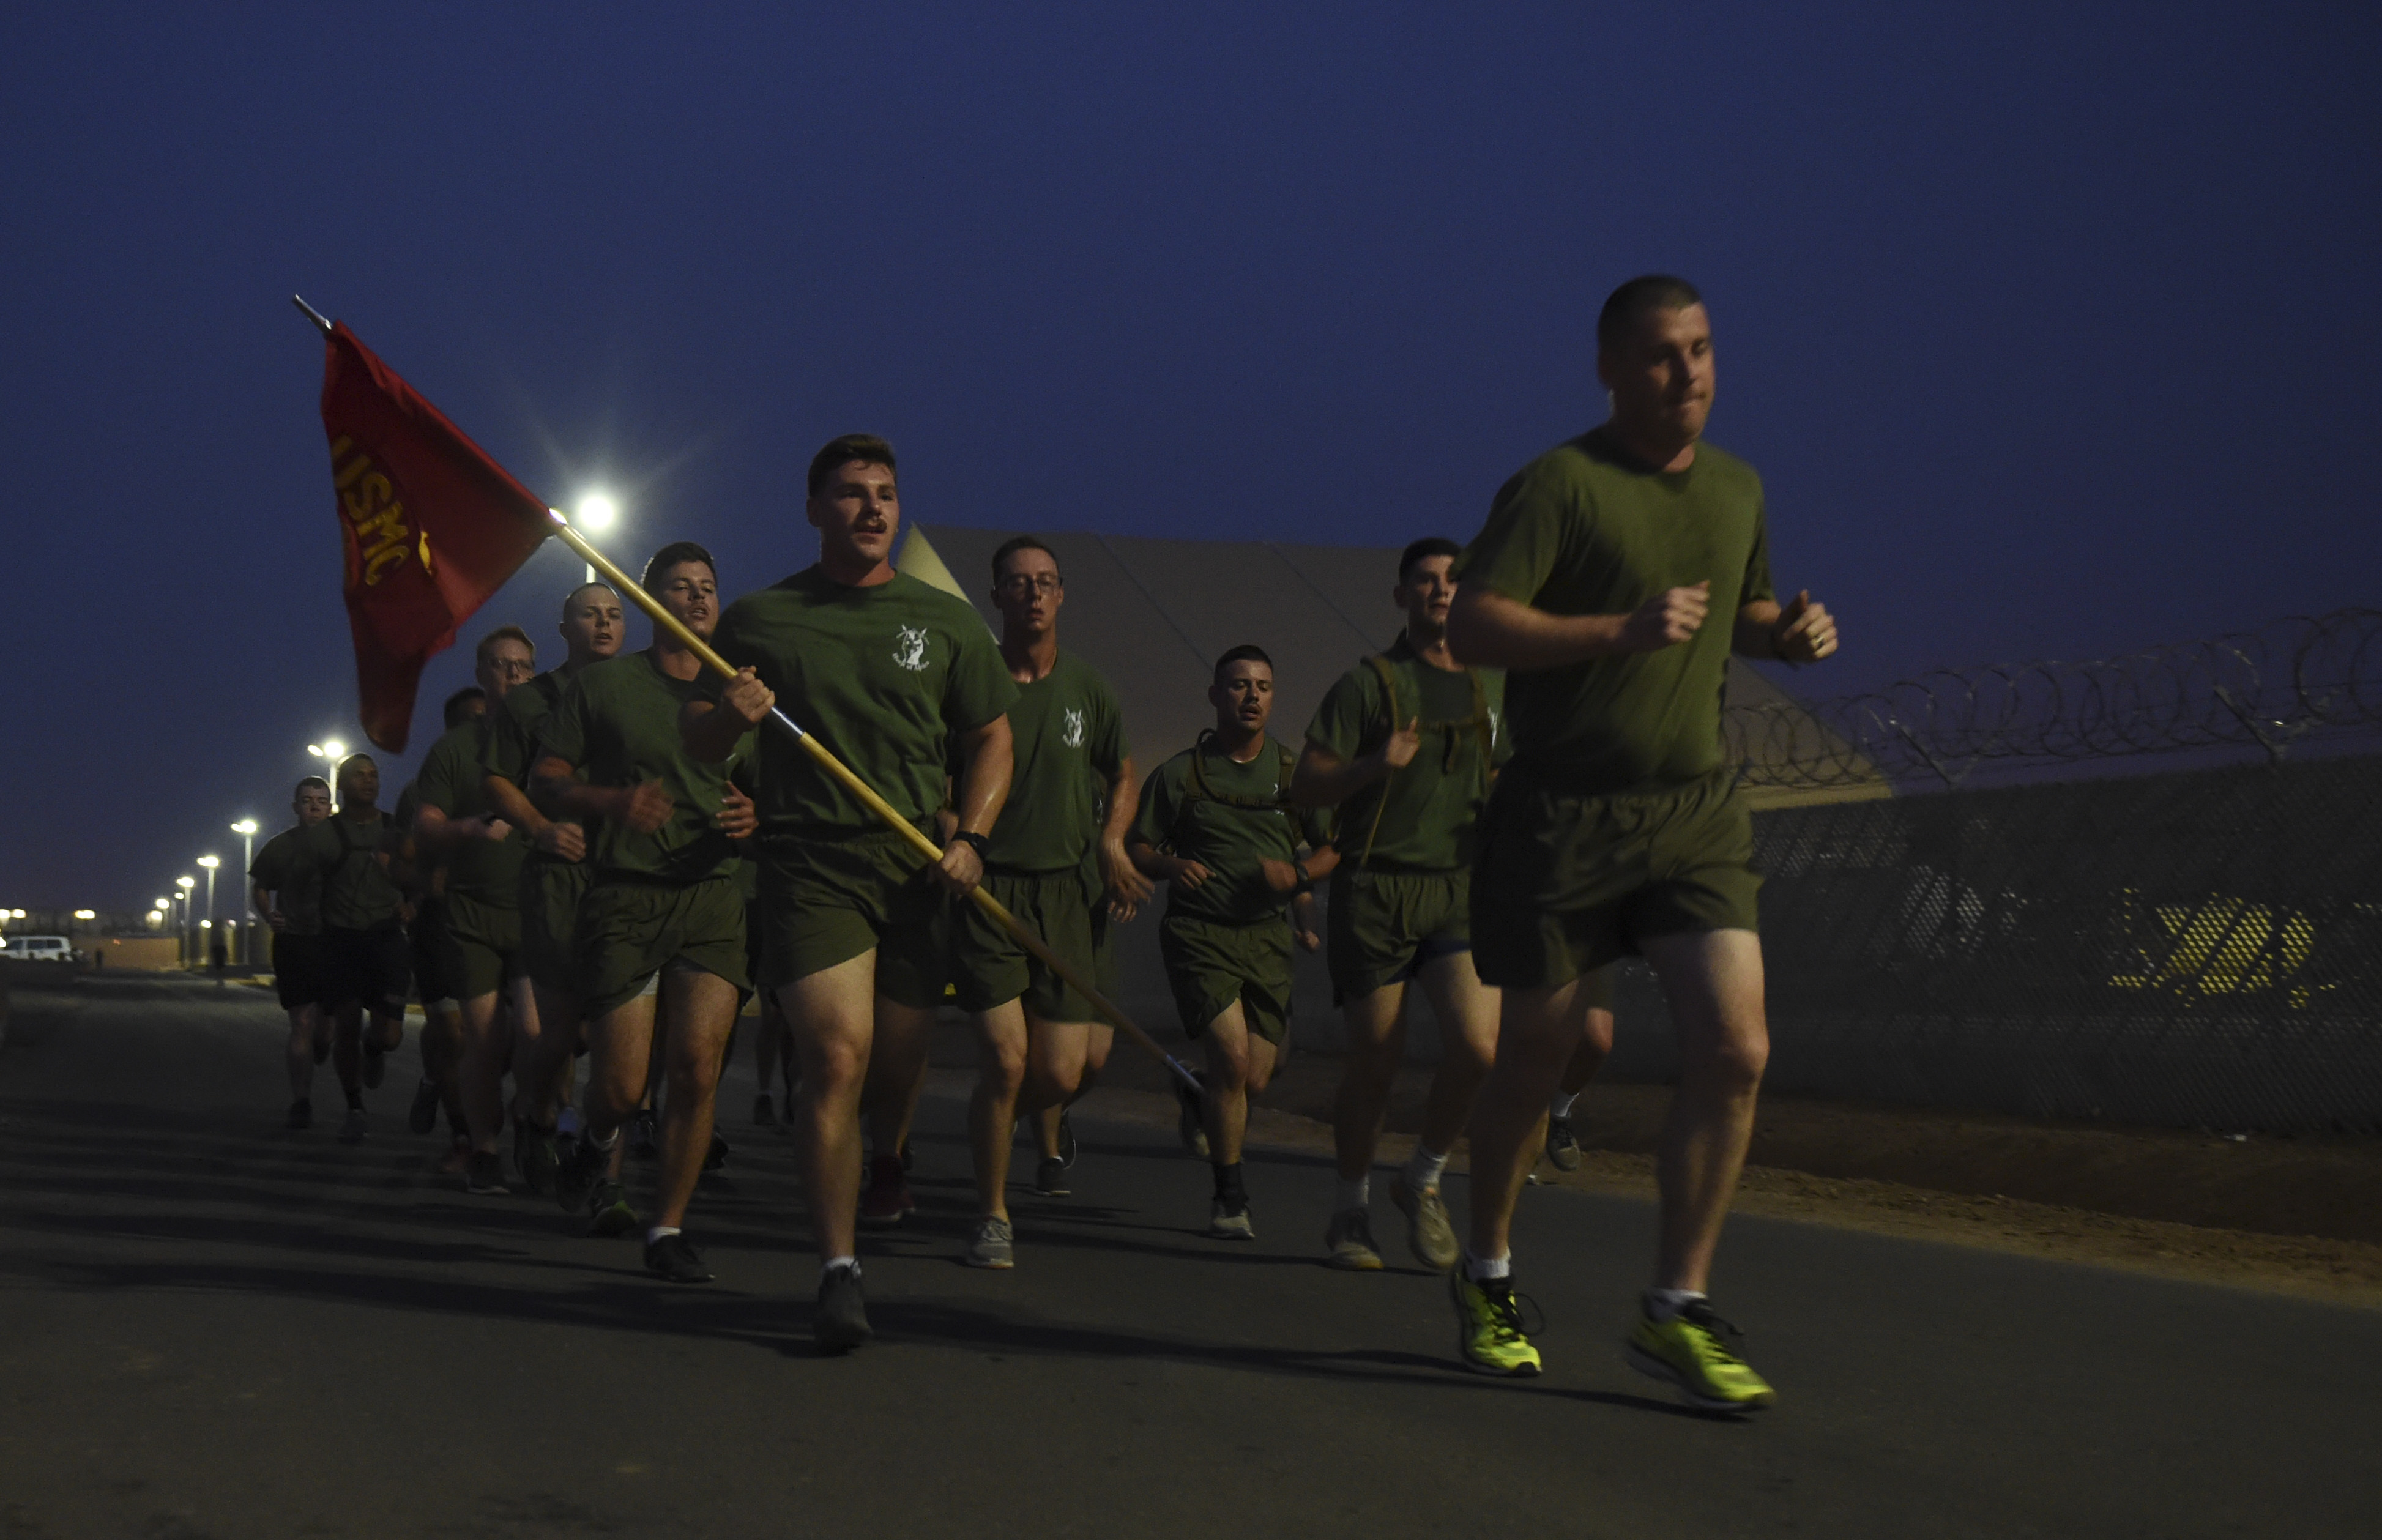 U.S. service members participate in a motivational run around Camp Lemonnier during the Corporal's Course at Camp Lemonnier, Djibouti, June 2, 2017. The course is a requirement for Marines in the enlisted grade of E-4, but here, all U.S. service members in the ranks of corporal, specialist, senior airman or petty officer third class were allowed to participate. (U.S. Air Force photo by Staff Sgt. Eboni Prince)